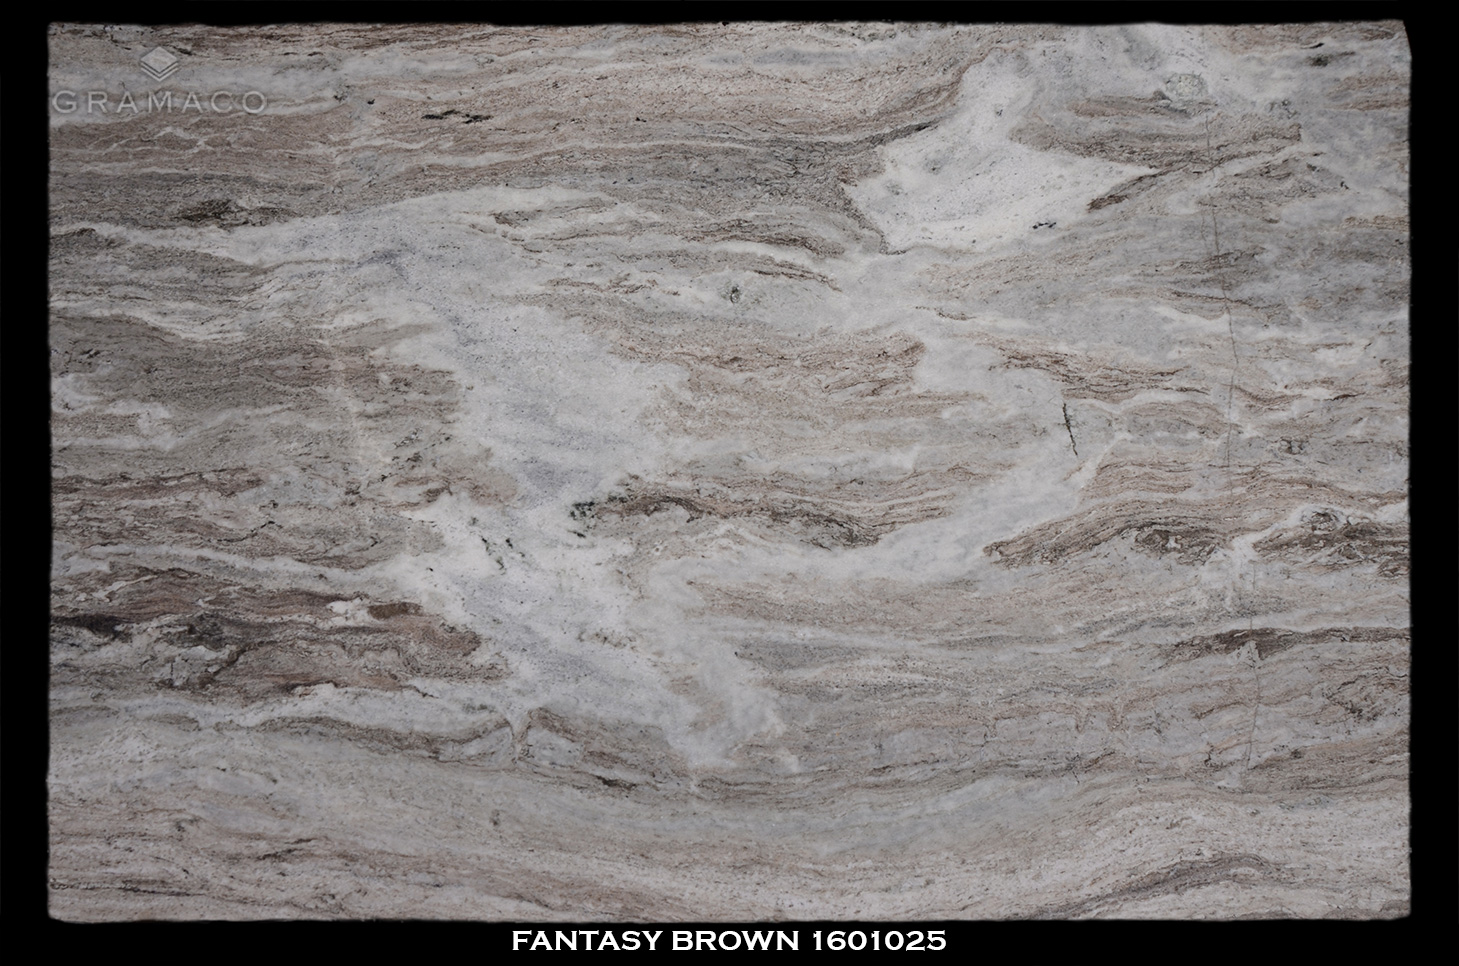 Fantansy-Brown-1601025-slab